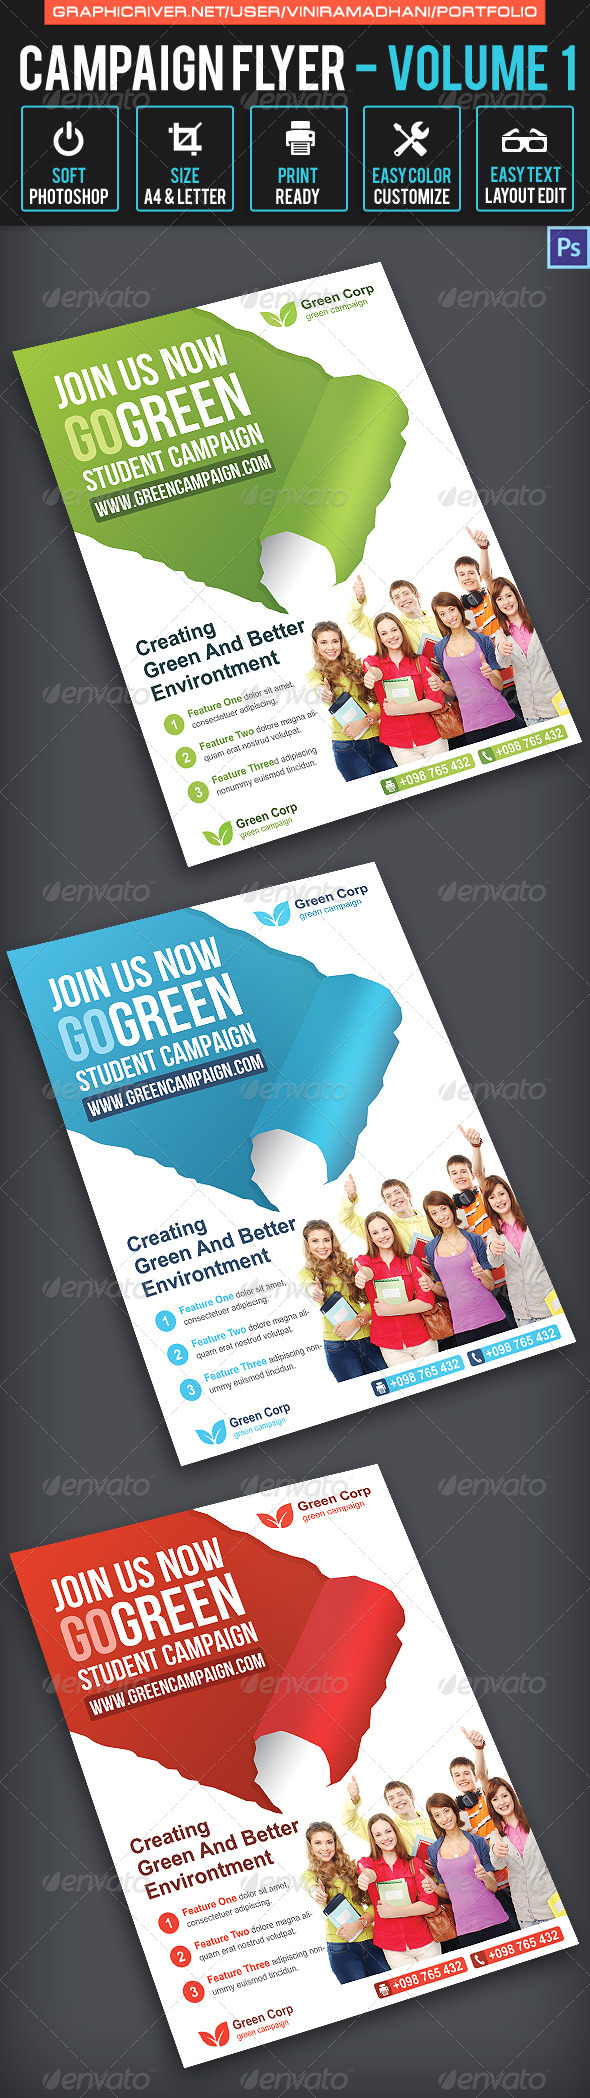 GraphicRiver Campaign Flyer Volume 1 6881455